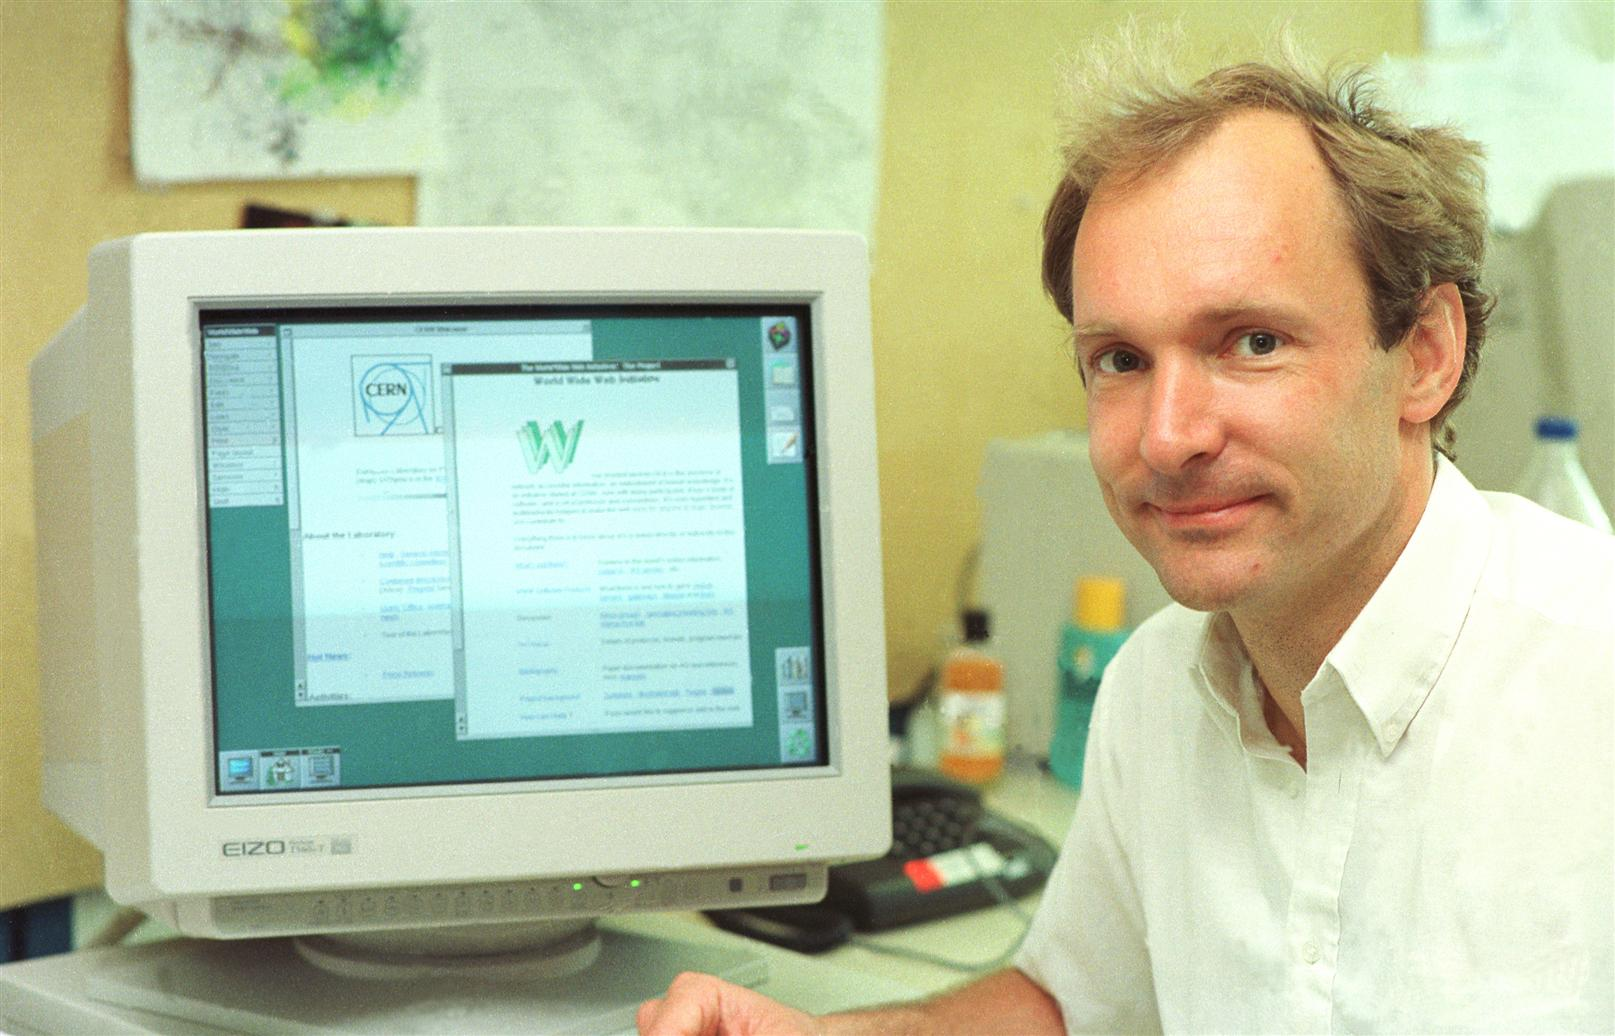 Tim Berners-Lee, World Wide Web inventor